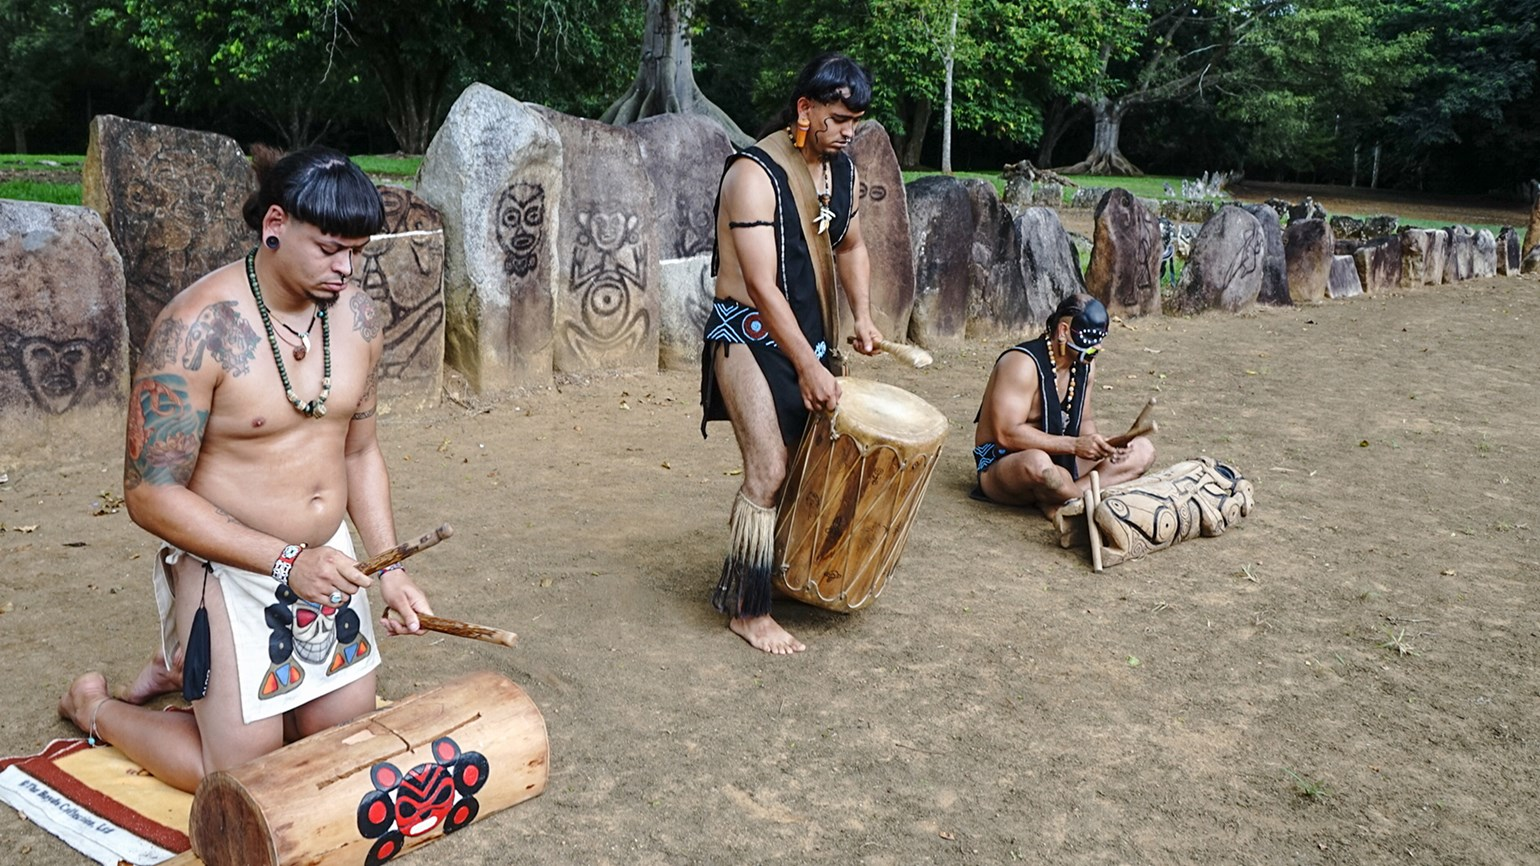 Puerto Rico tour highlights the Taino people